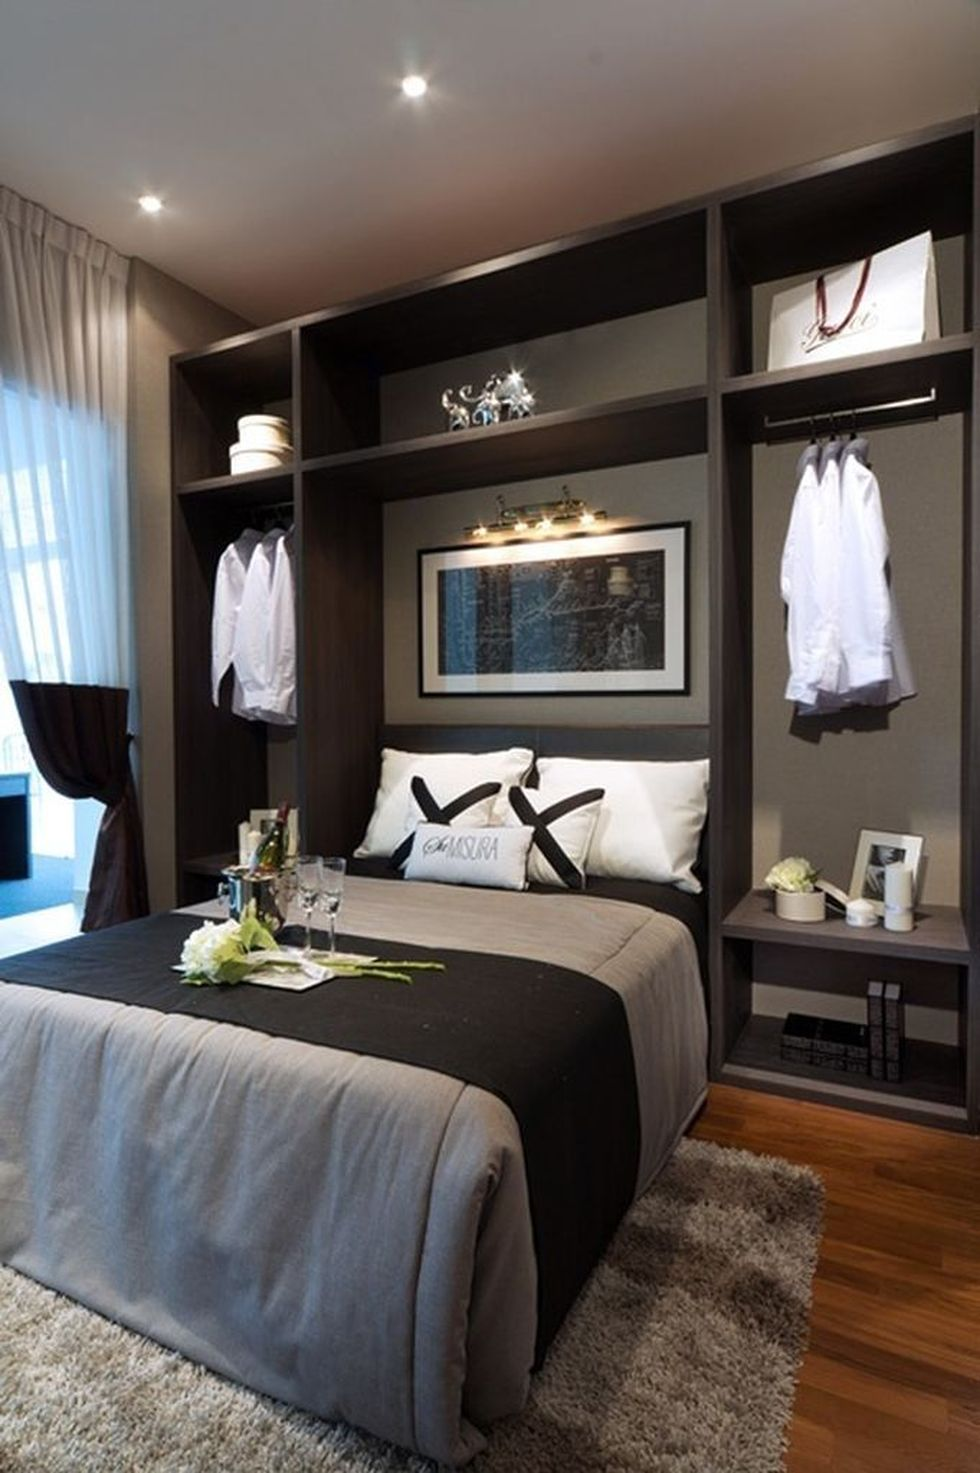 Cool modern bedroom design ideas 1 - Hoommy.com on Cool Bedroom Ideas For Small Rooms  id=60967